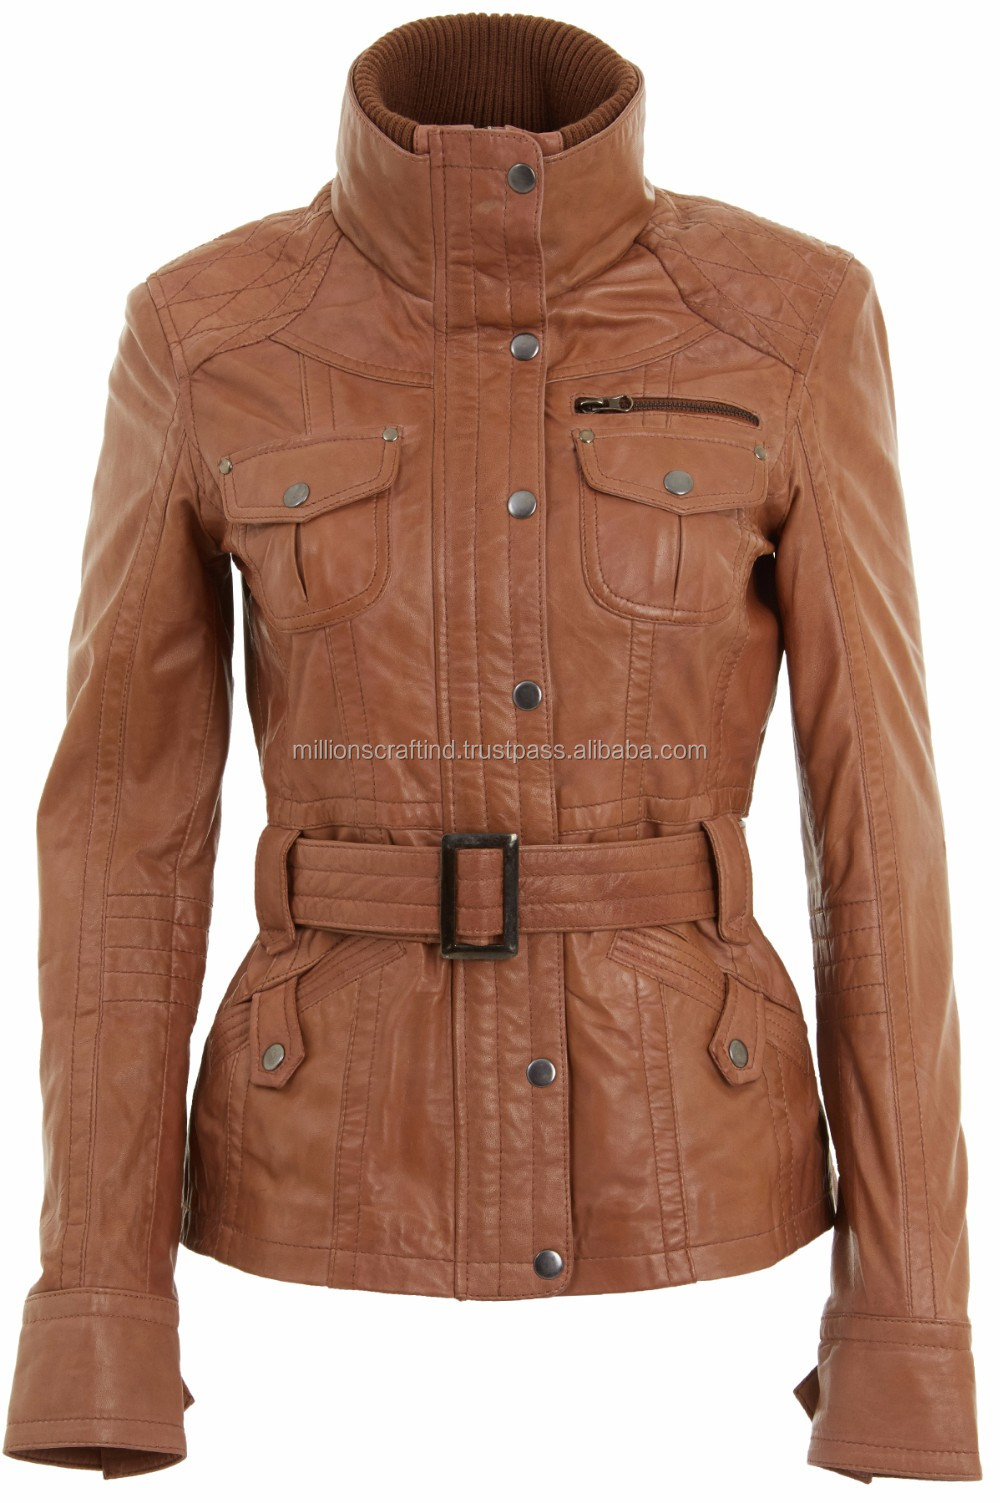 b14002a72b6 Classic Diamond Motorcycle Biker Brown Distressed Vintage real Leather  Jacket nice color